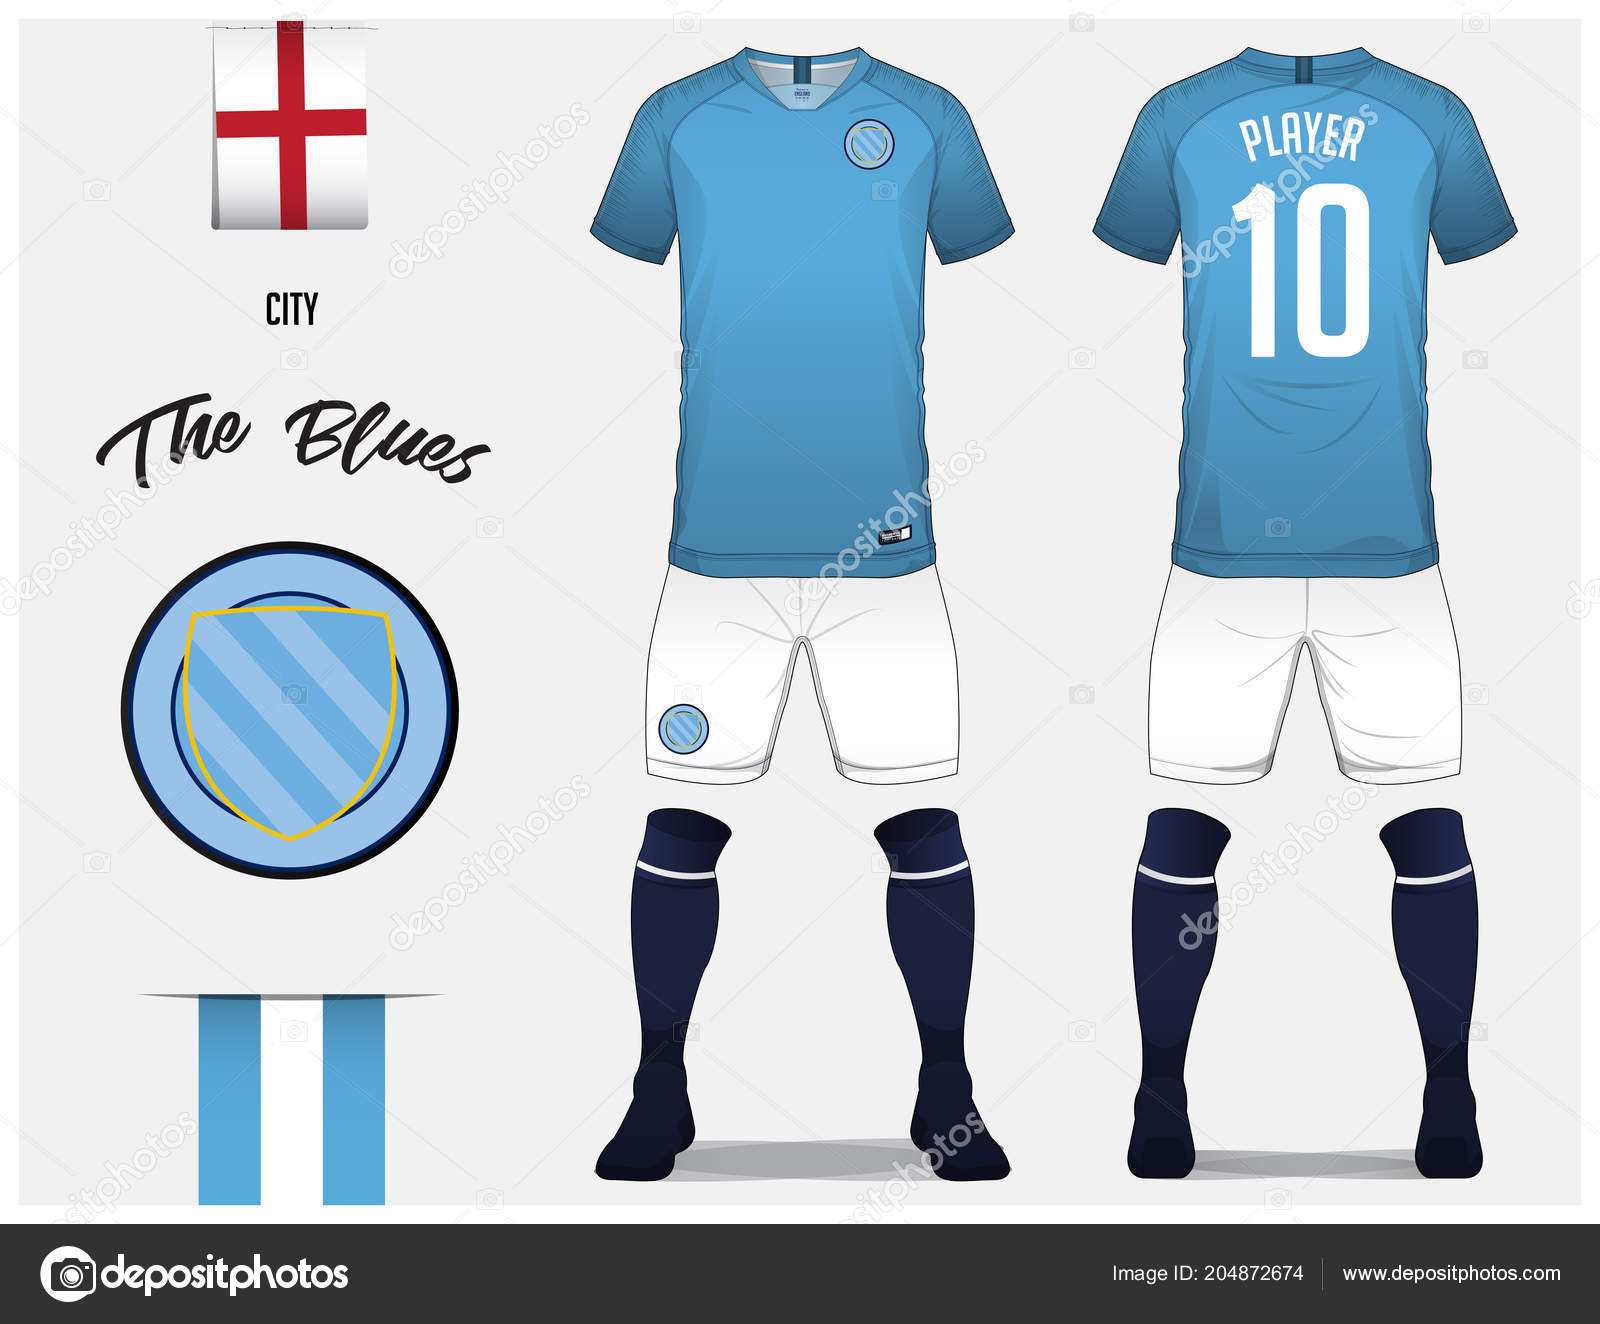 Soccer Jersey Or Football Kit Template For Club Blue Shirt With Dark Sock And White Shorts Mock Up Front Back View